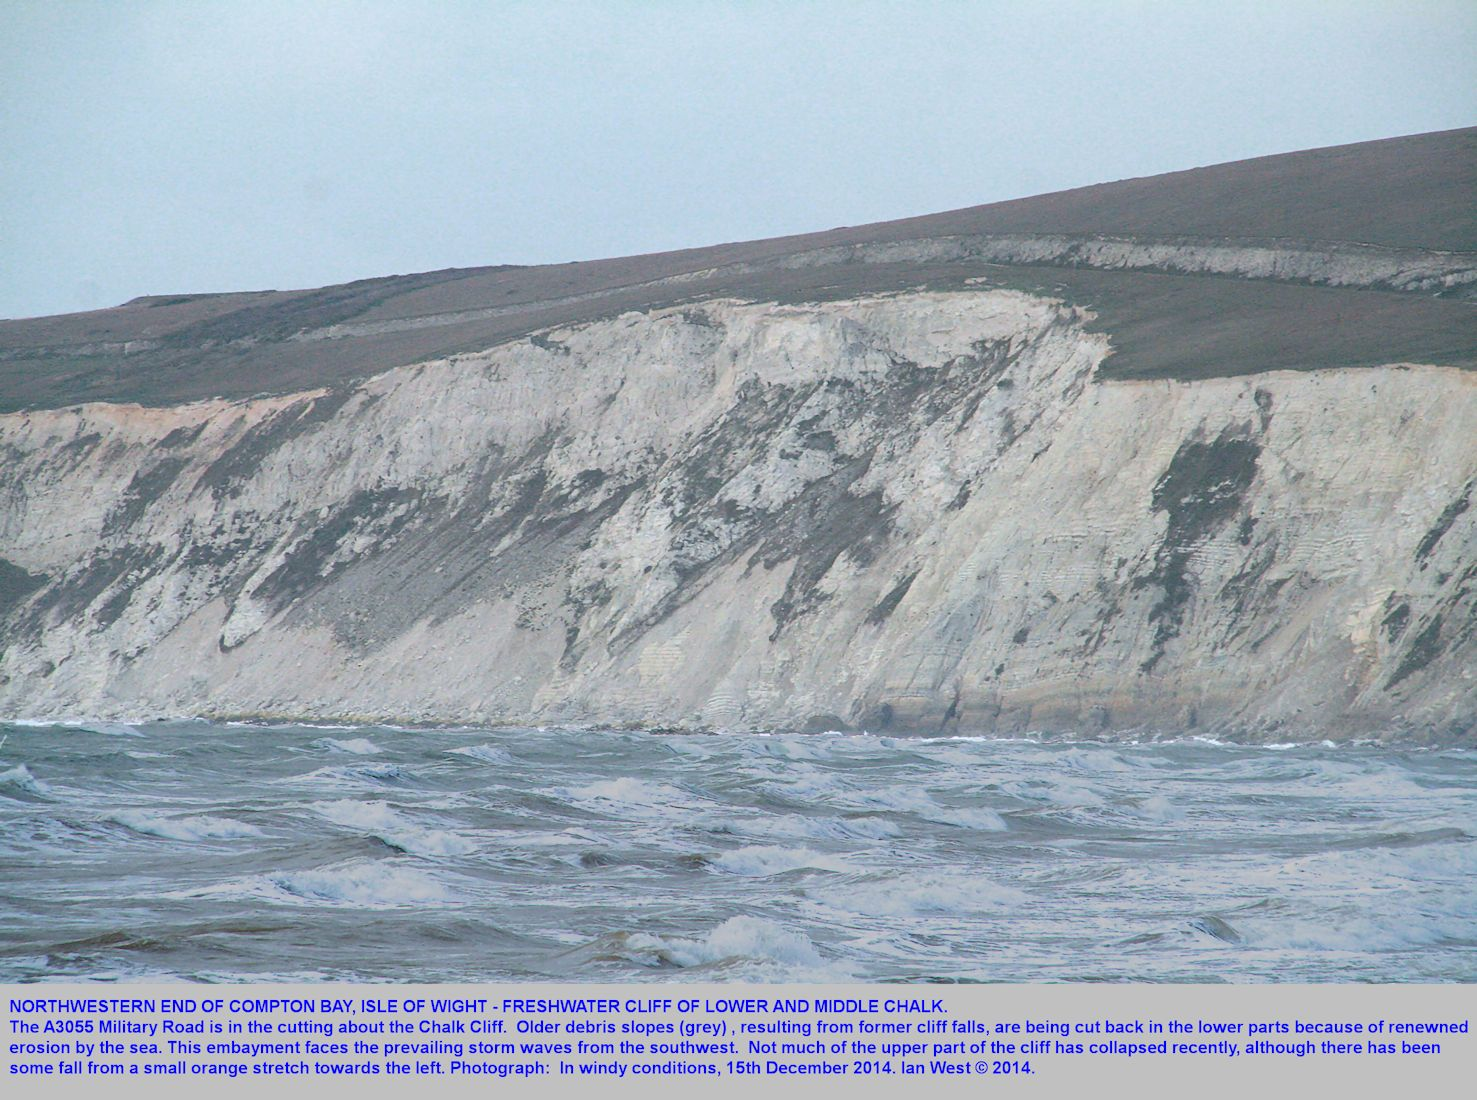 Freshwater Cliff of Lower and Middle Chalk, northwest of Compton Bay, Isle of Wight, 15th December 2014